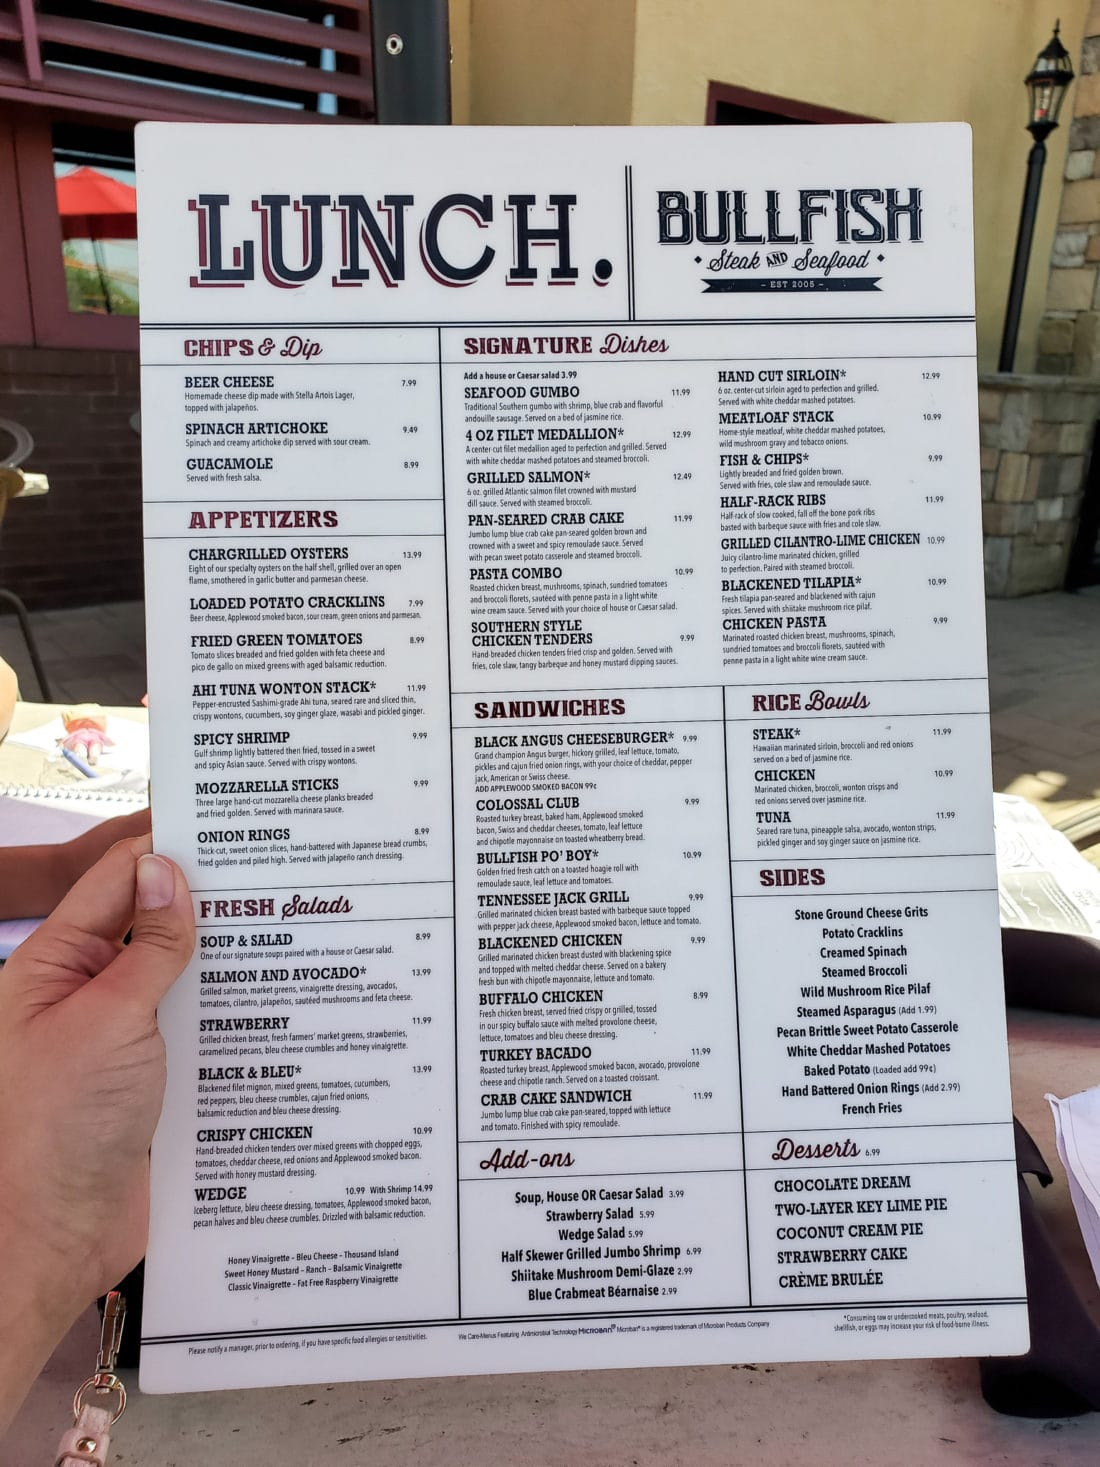 Bullfish Grill Lunch Menu Pigeon Forge, TN. The Bullfish Grill offers a superb dining expierence built for families to enjoy. Enjoy freshly baked bread with a backdrop of the beautiful Smoky Mountains. View the menu and all the foods we enjoyed during our visit on the blog.